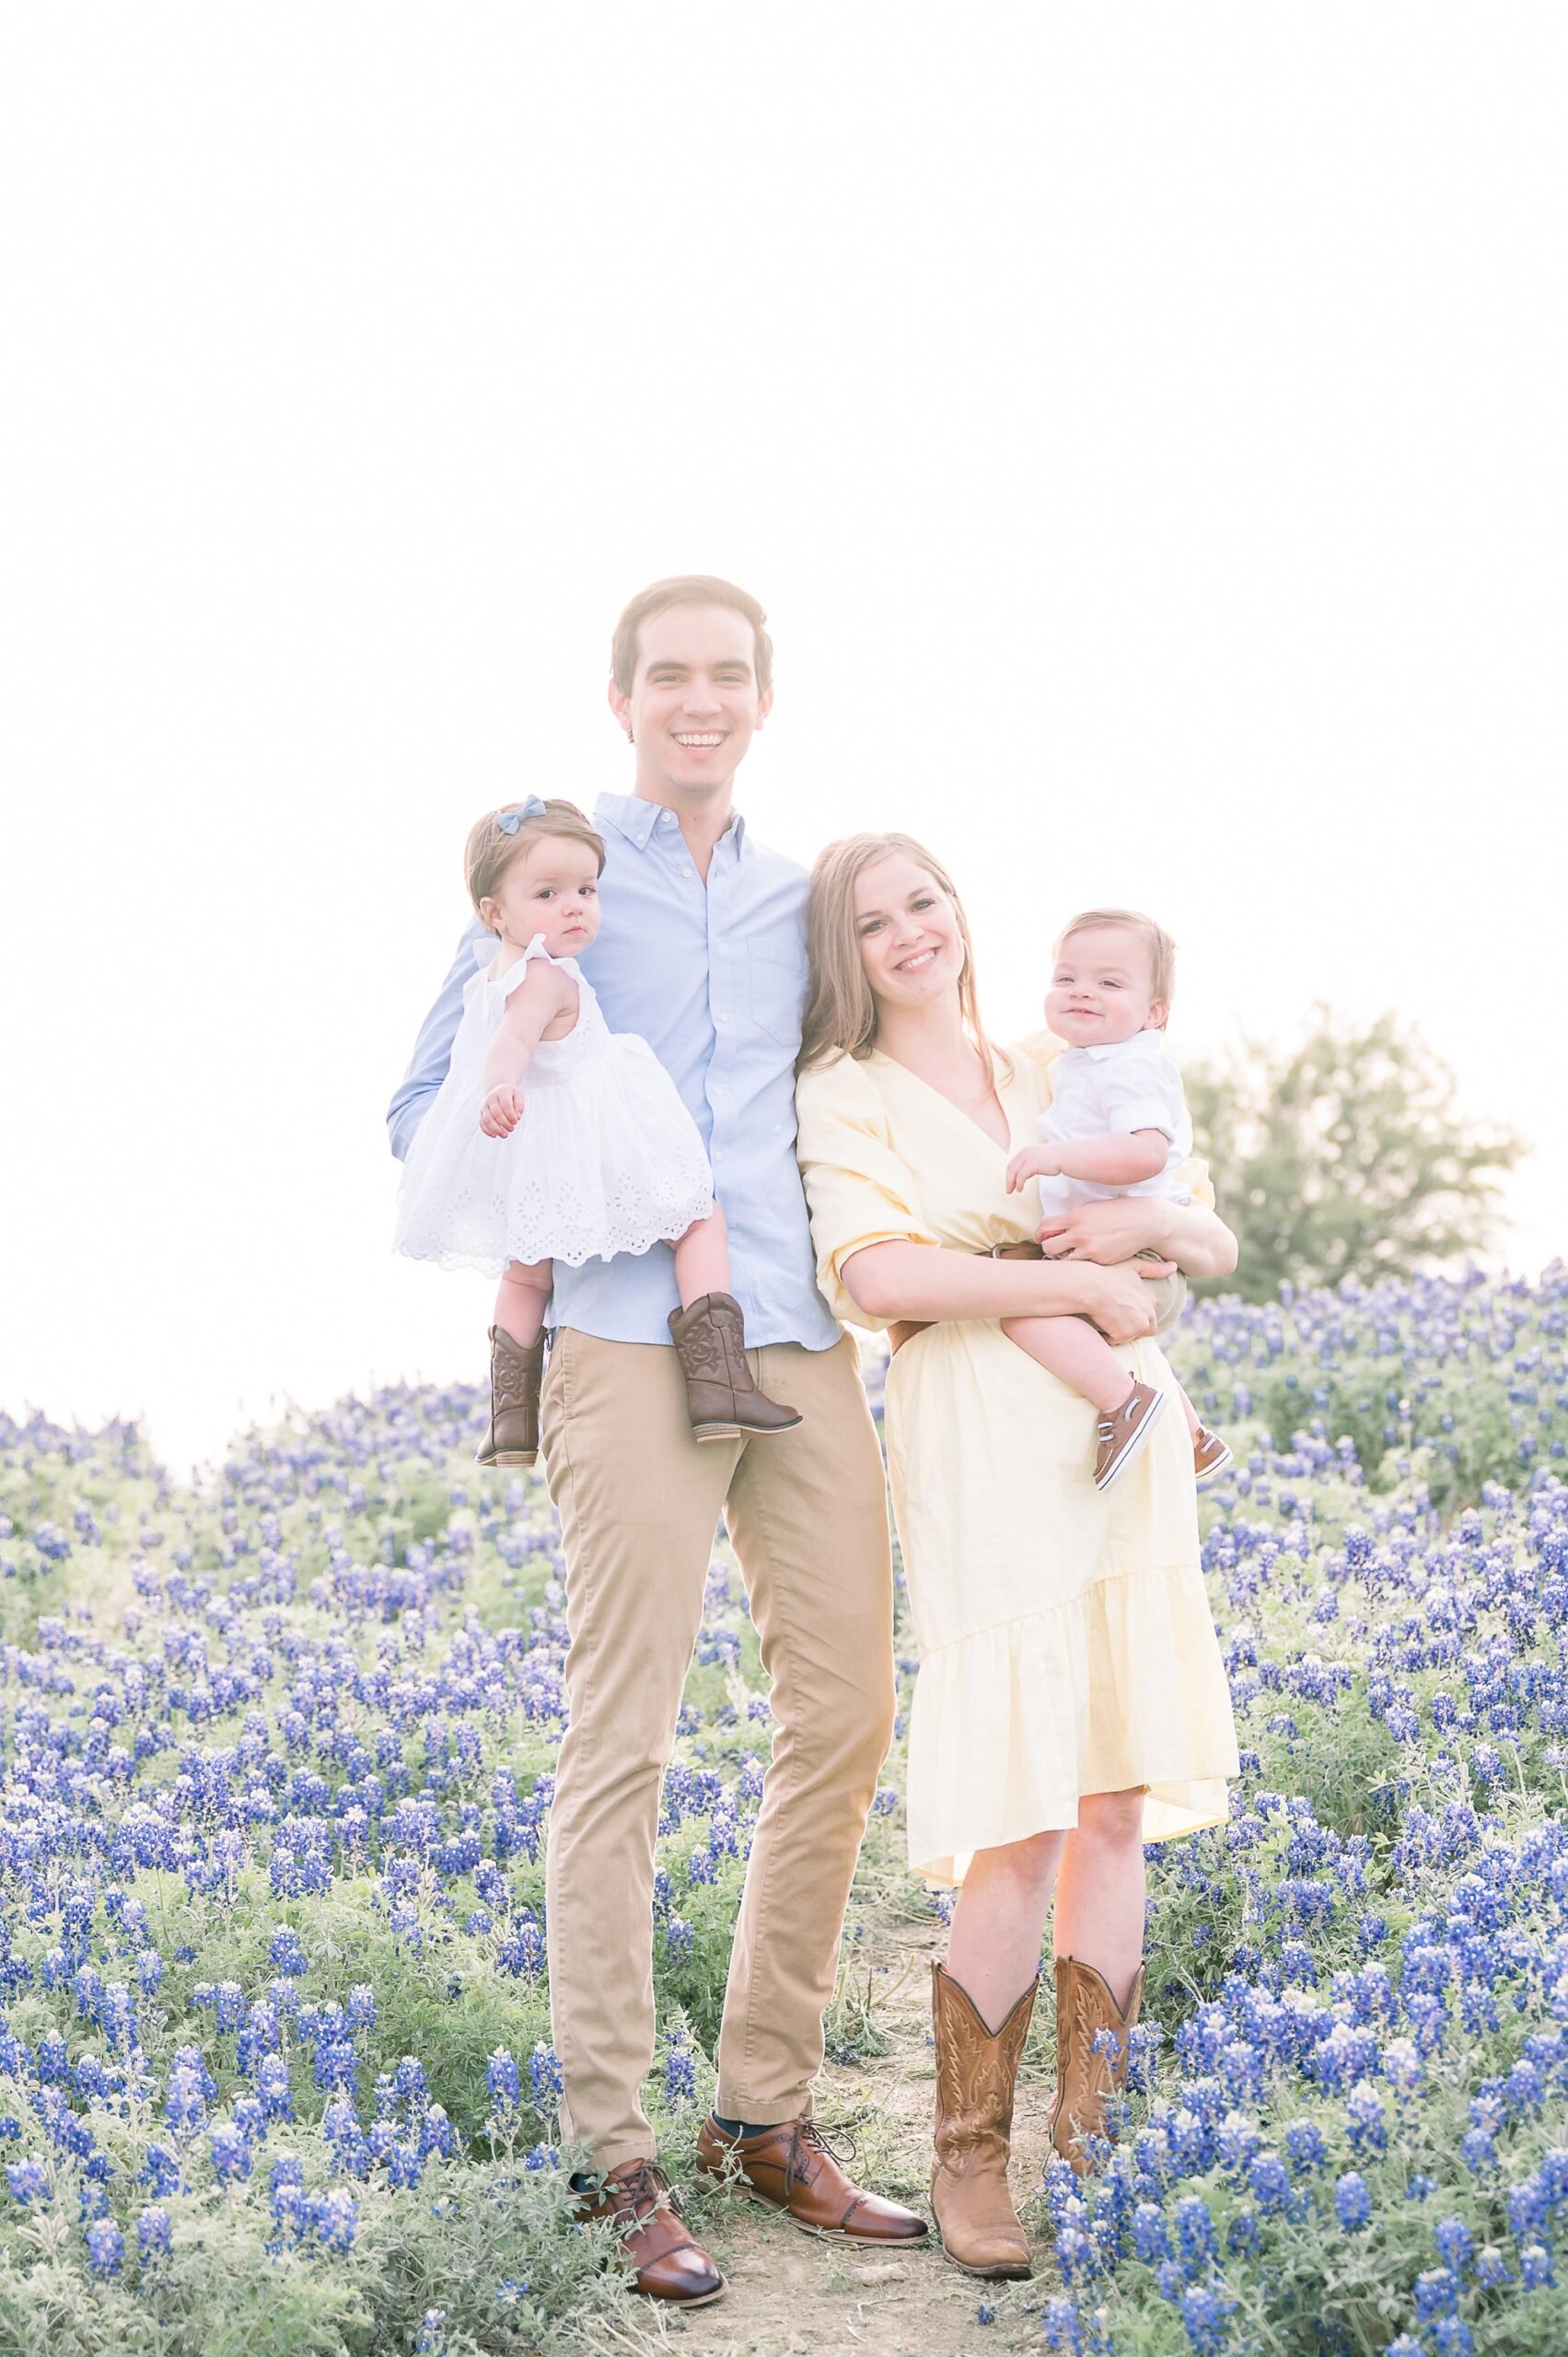 Family portrait with everyone smiling at the camera in bluebonnet field by Prosper family photographer, Aimee Hamilton Photography.